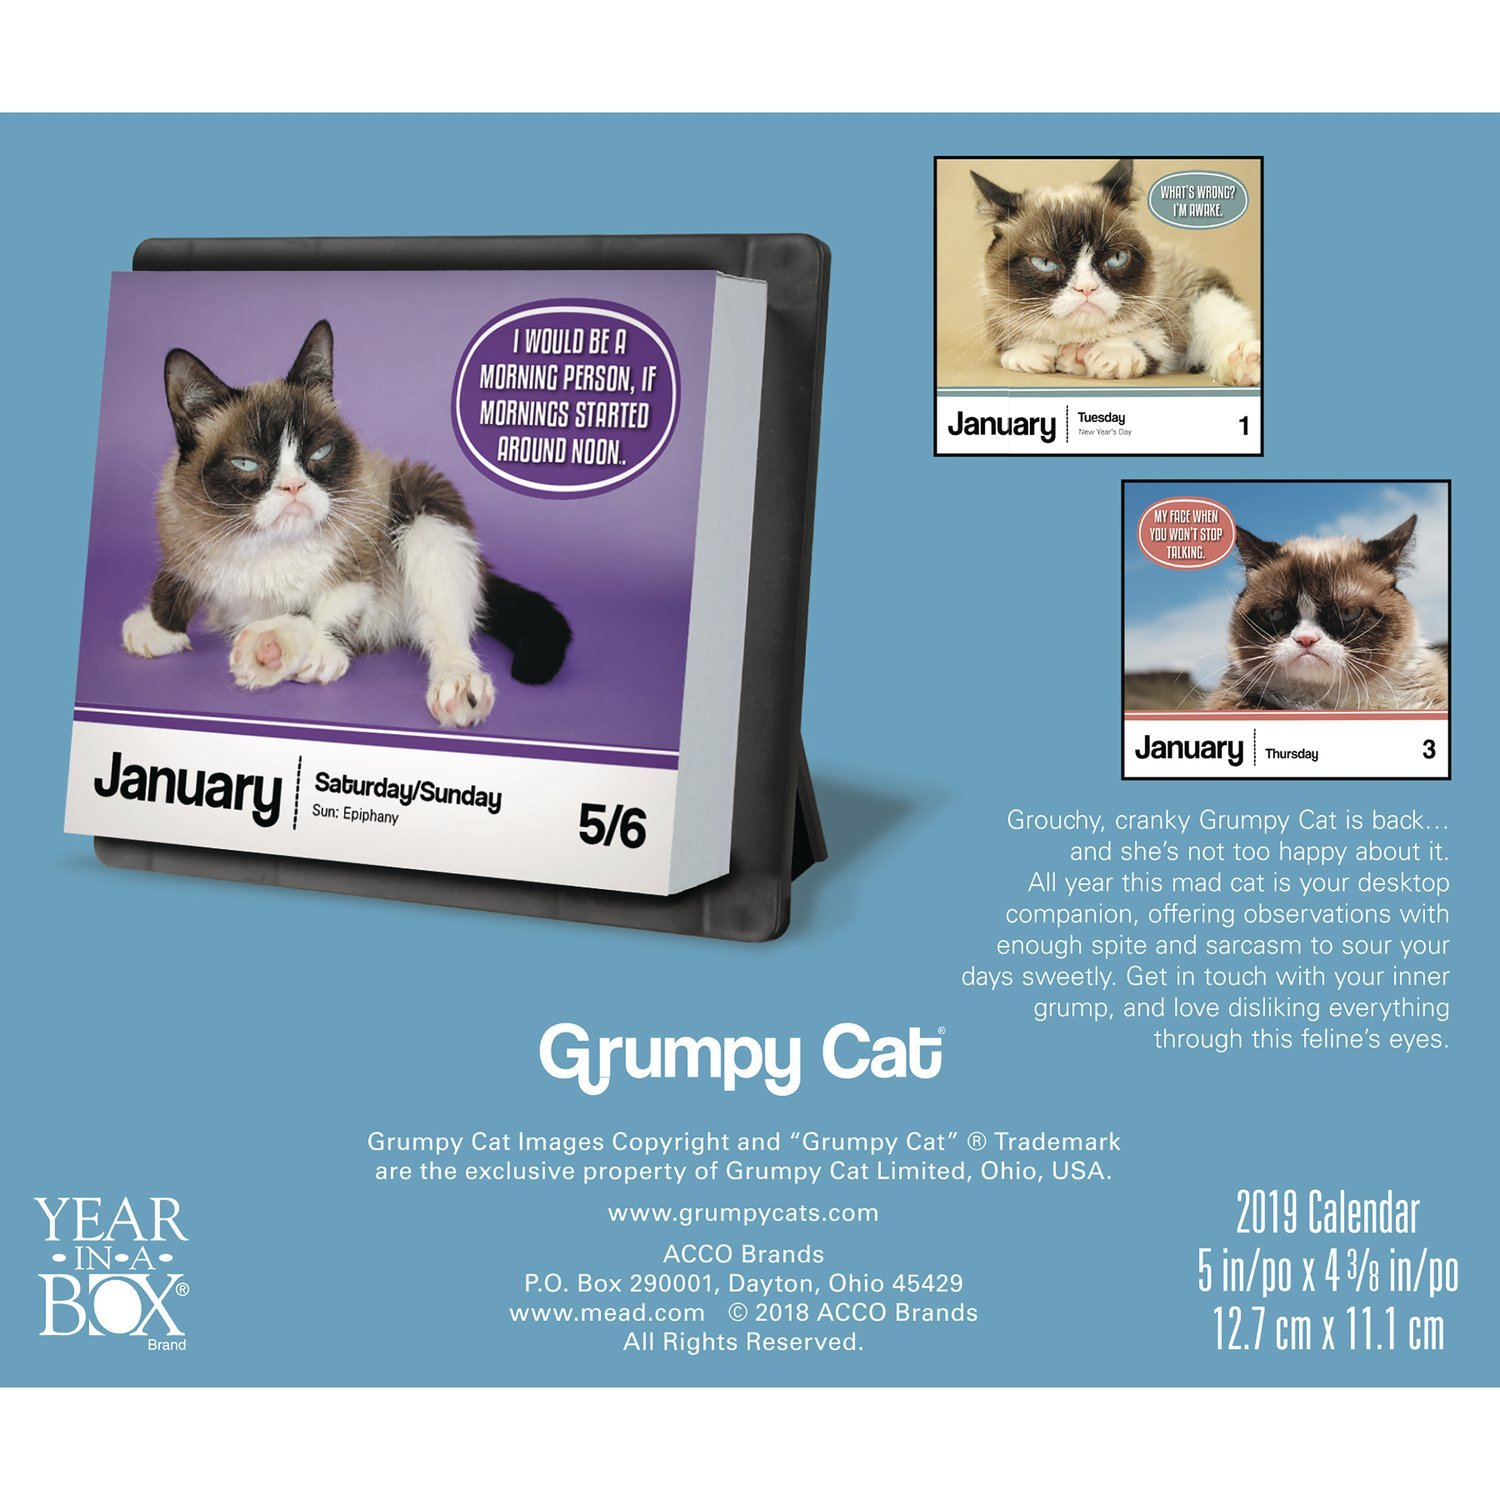 2019 Calendar July 1 Grumpy Cat Year In A Box 2018